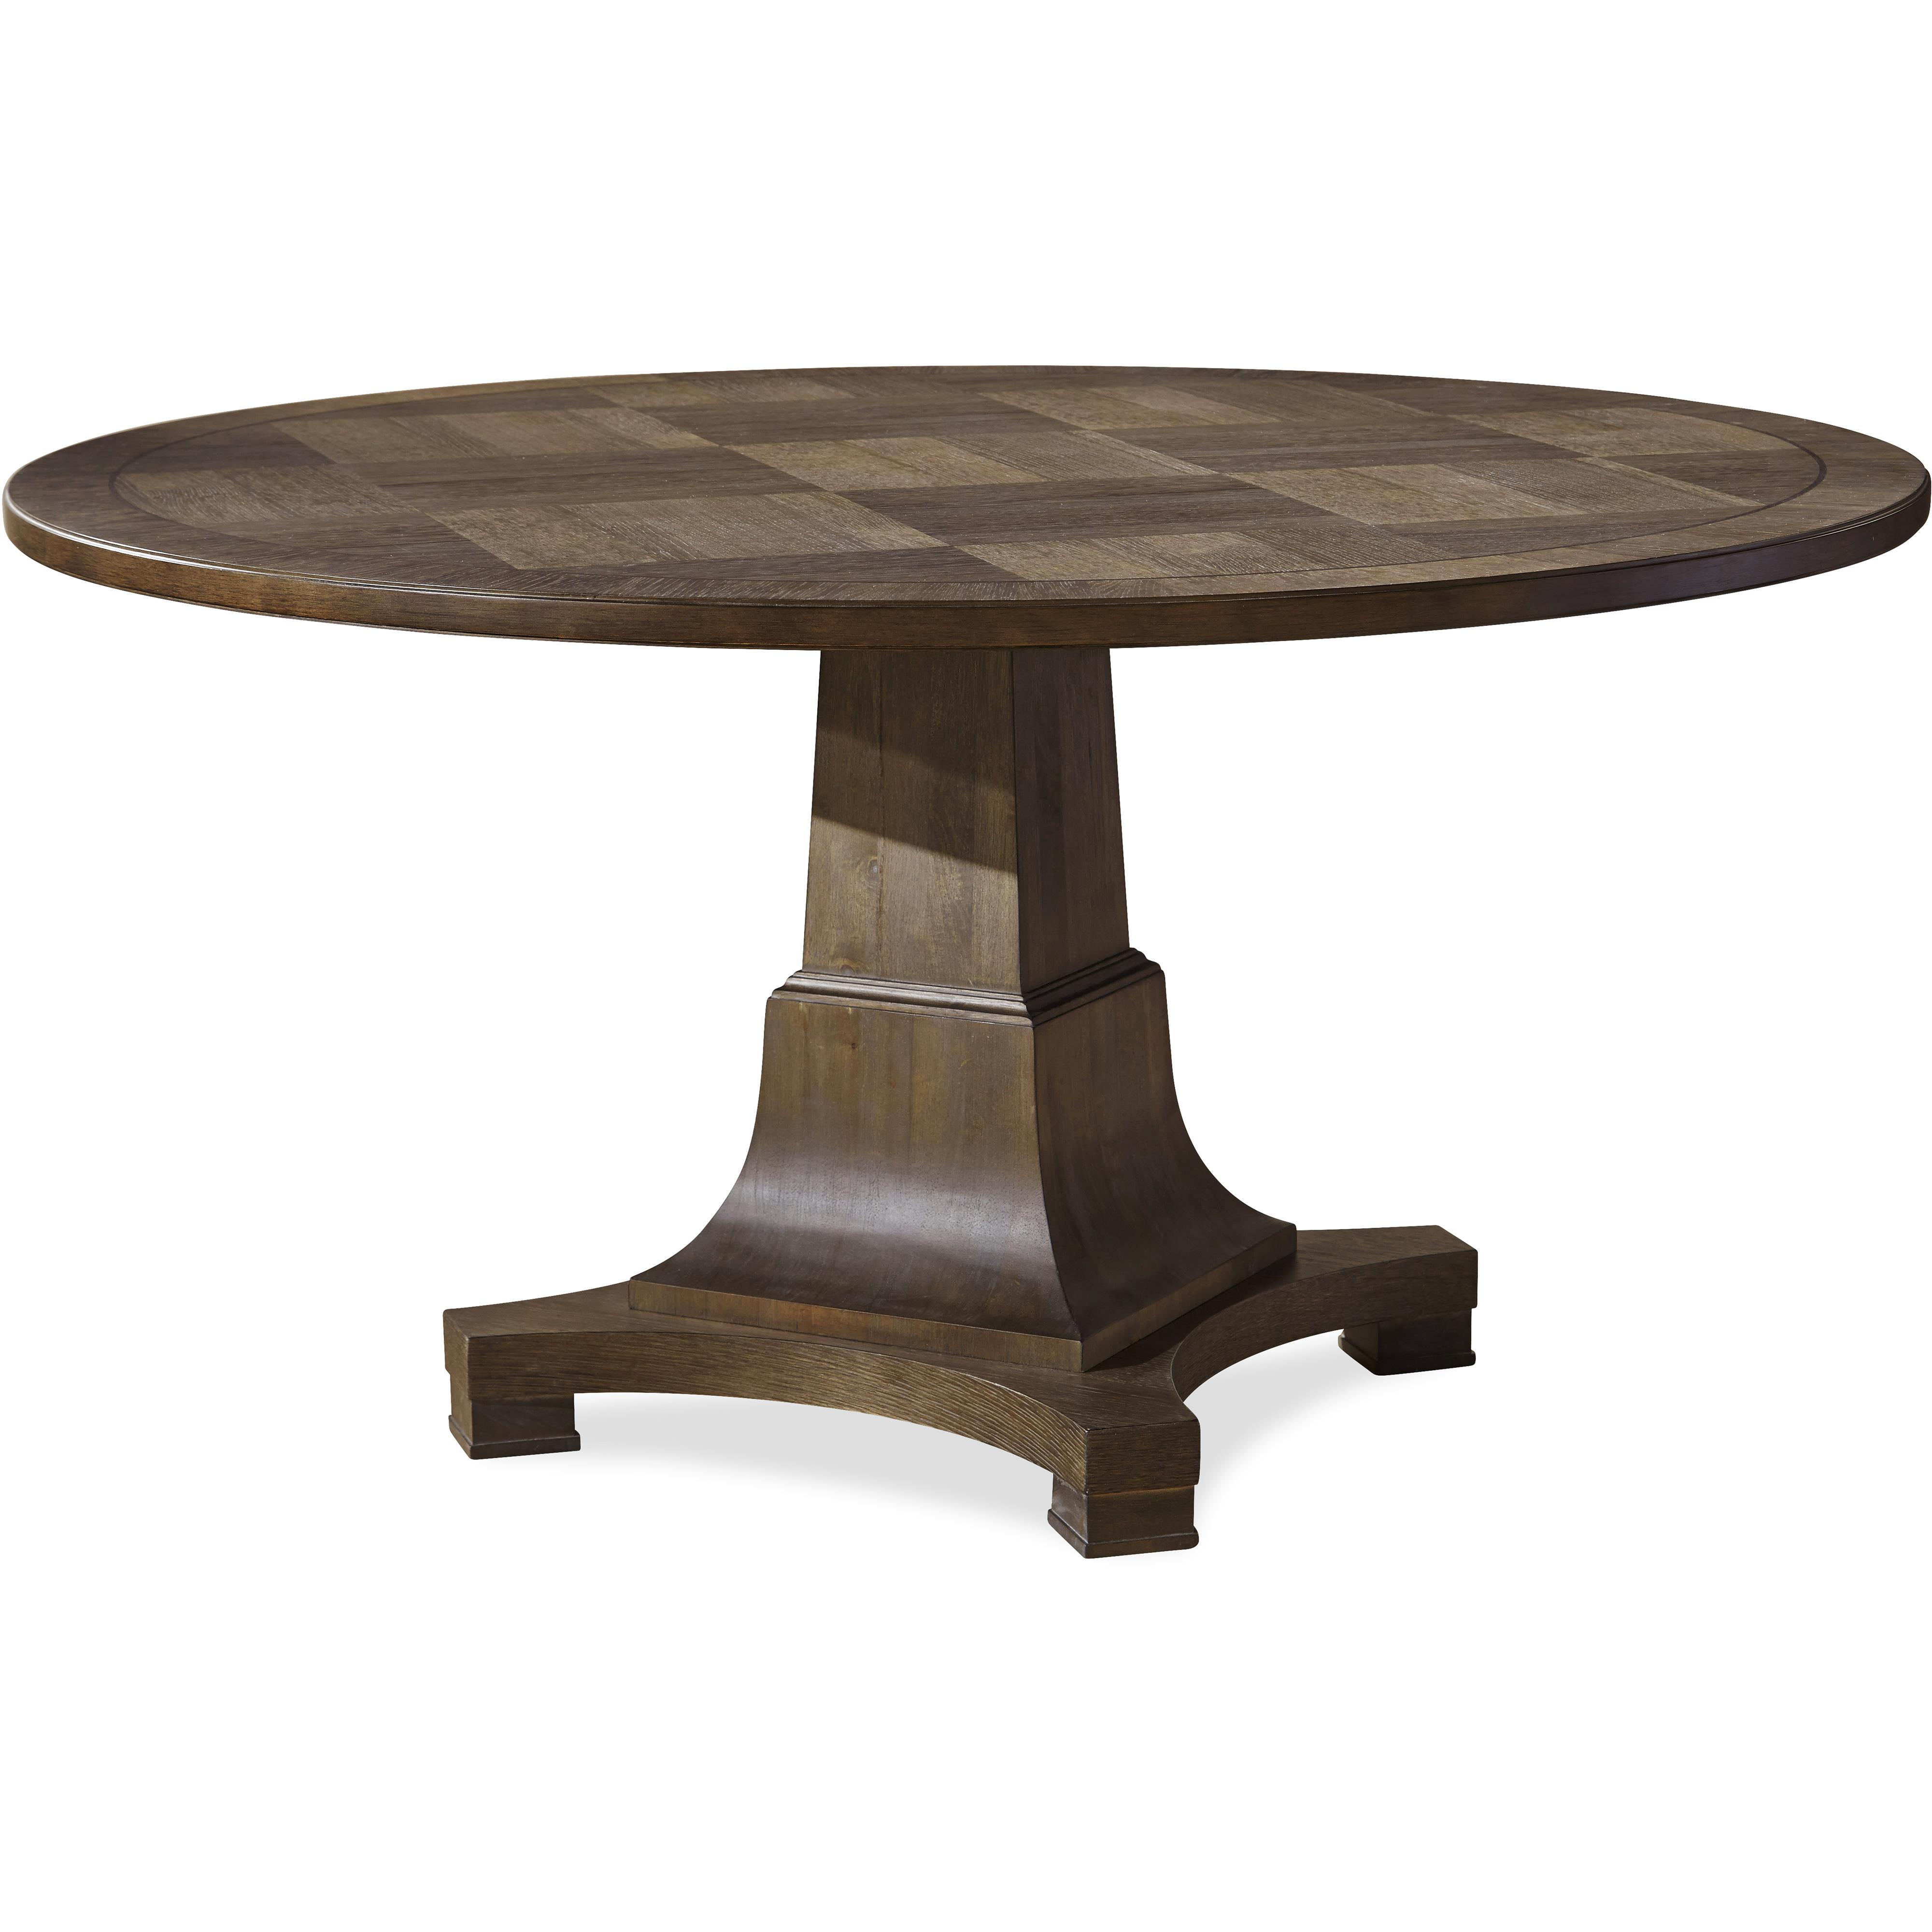 Universal Playlist Round Dining Table - Item Number: 507657